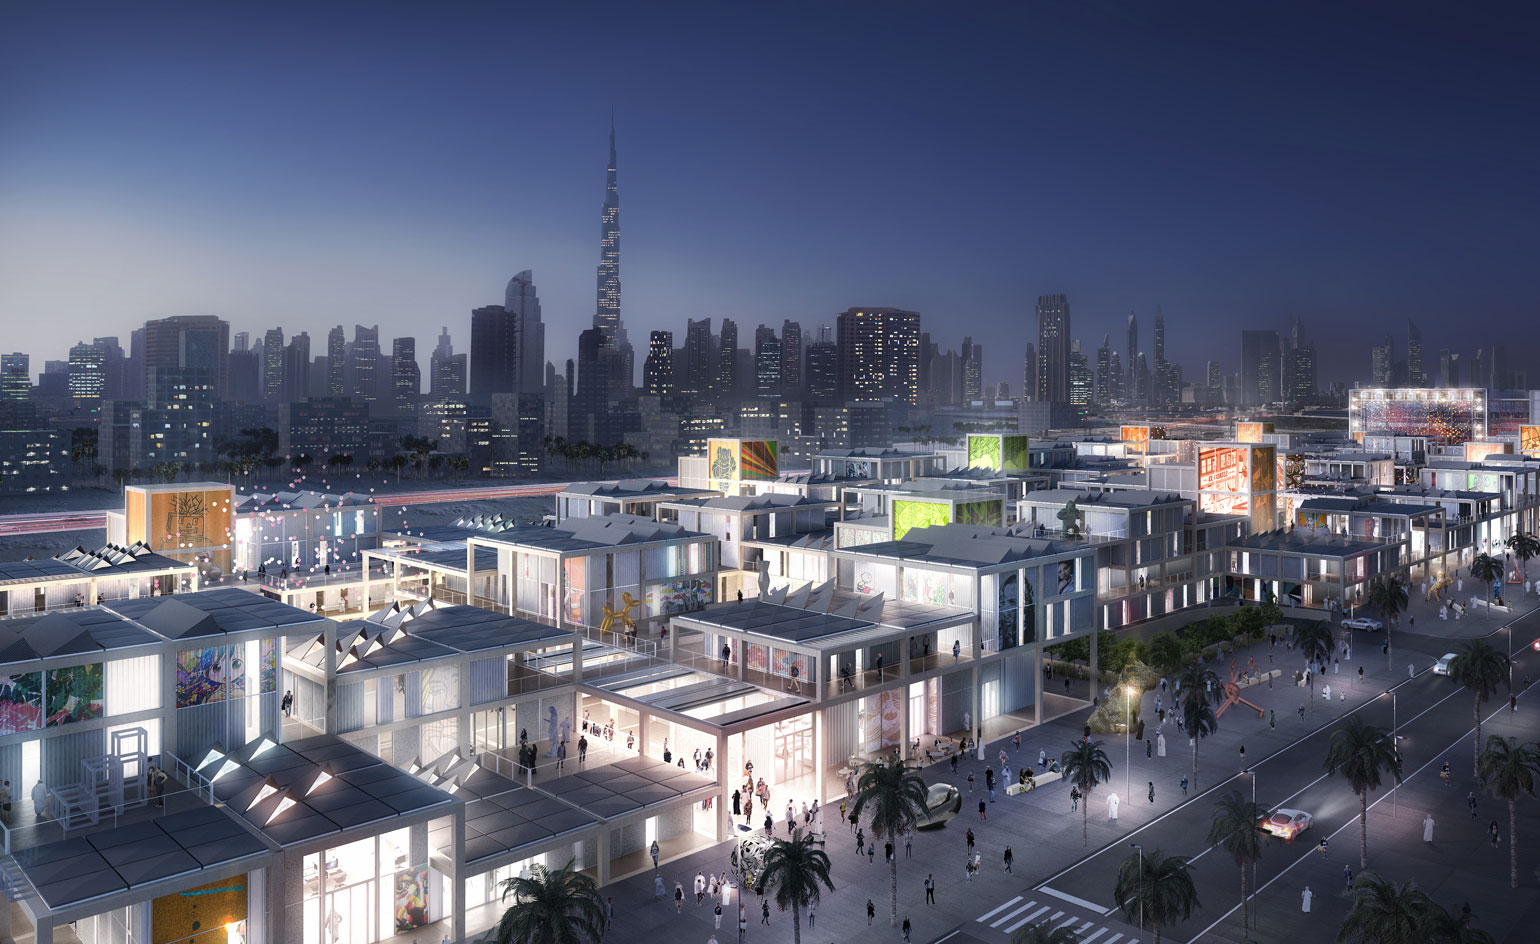 Dubai Design District será o centro da arte, moda, design e luxo do Oriente Médio stylo urbano